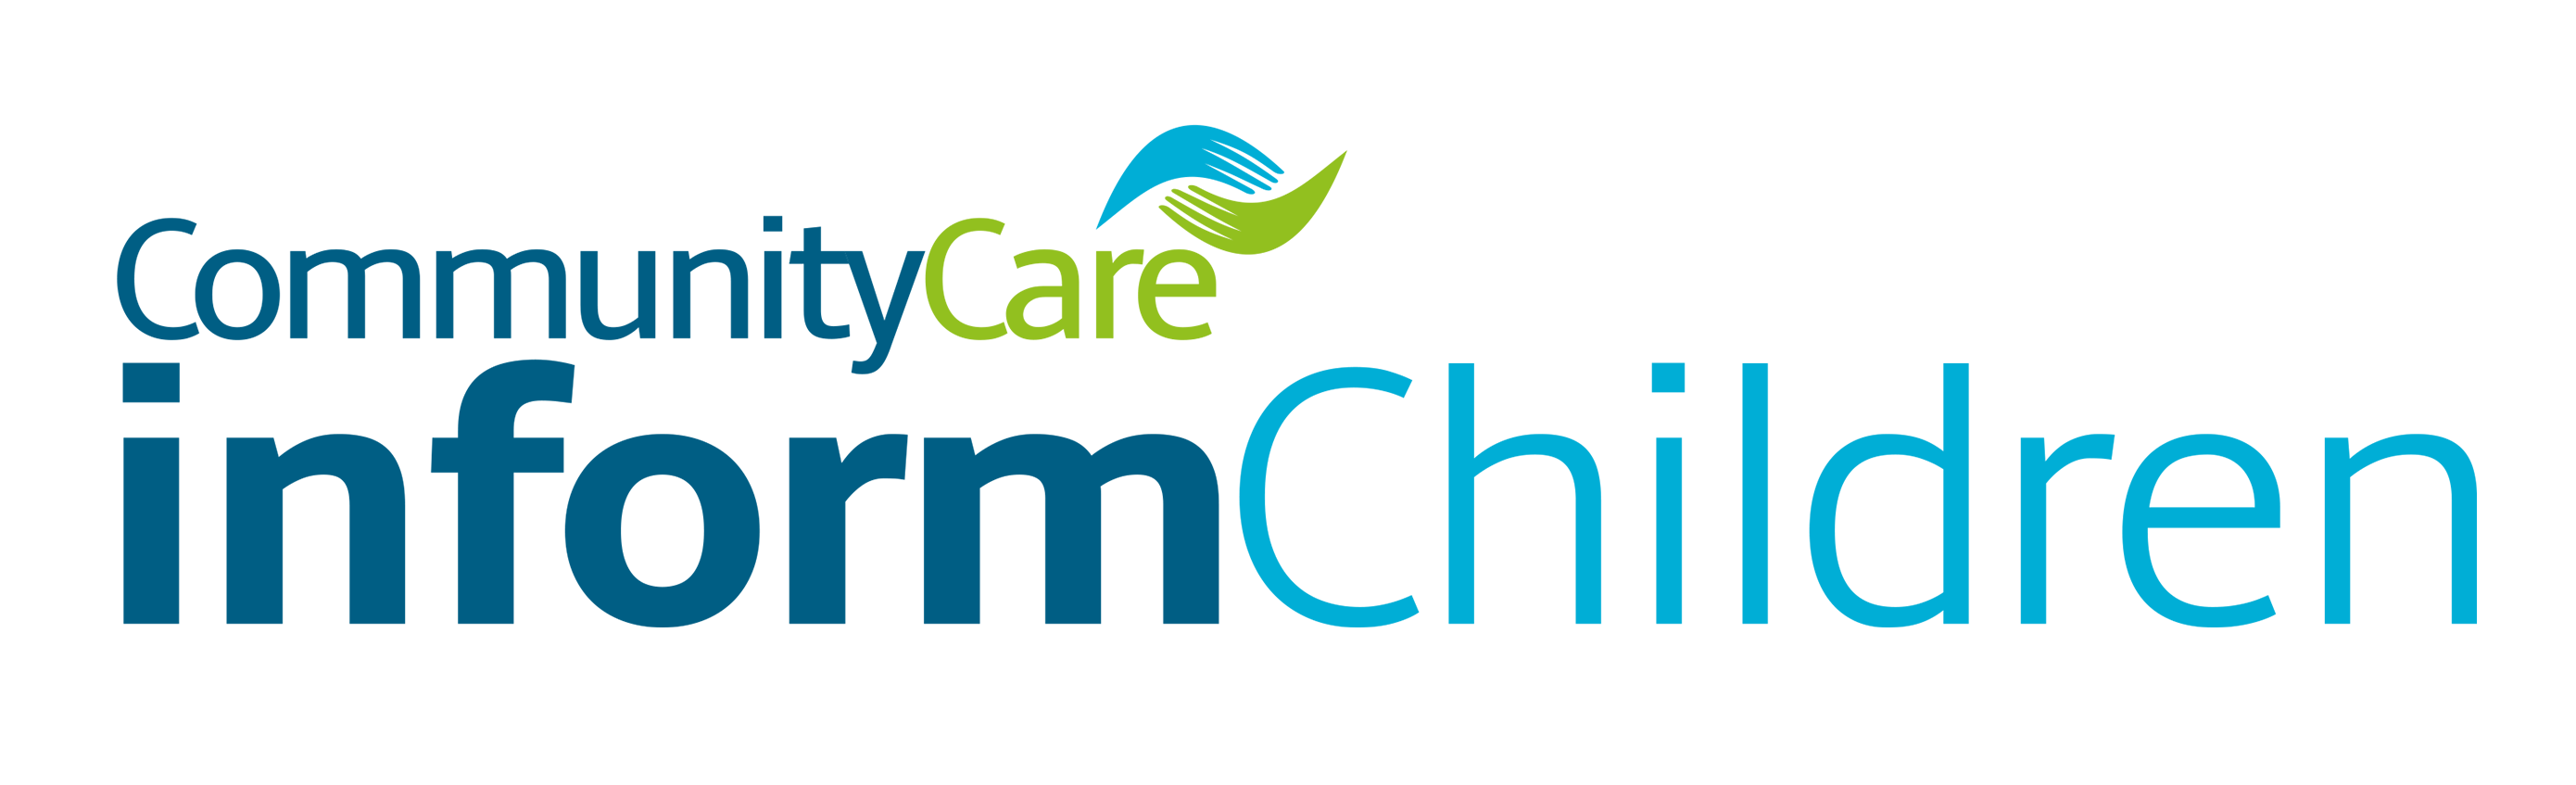 community care inform children logo